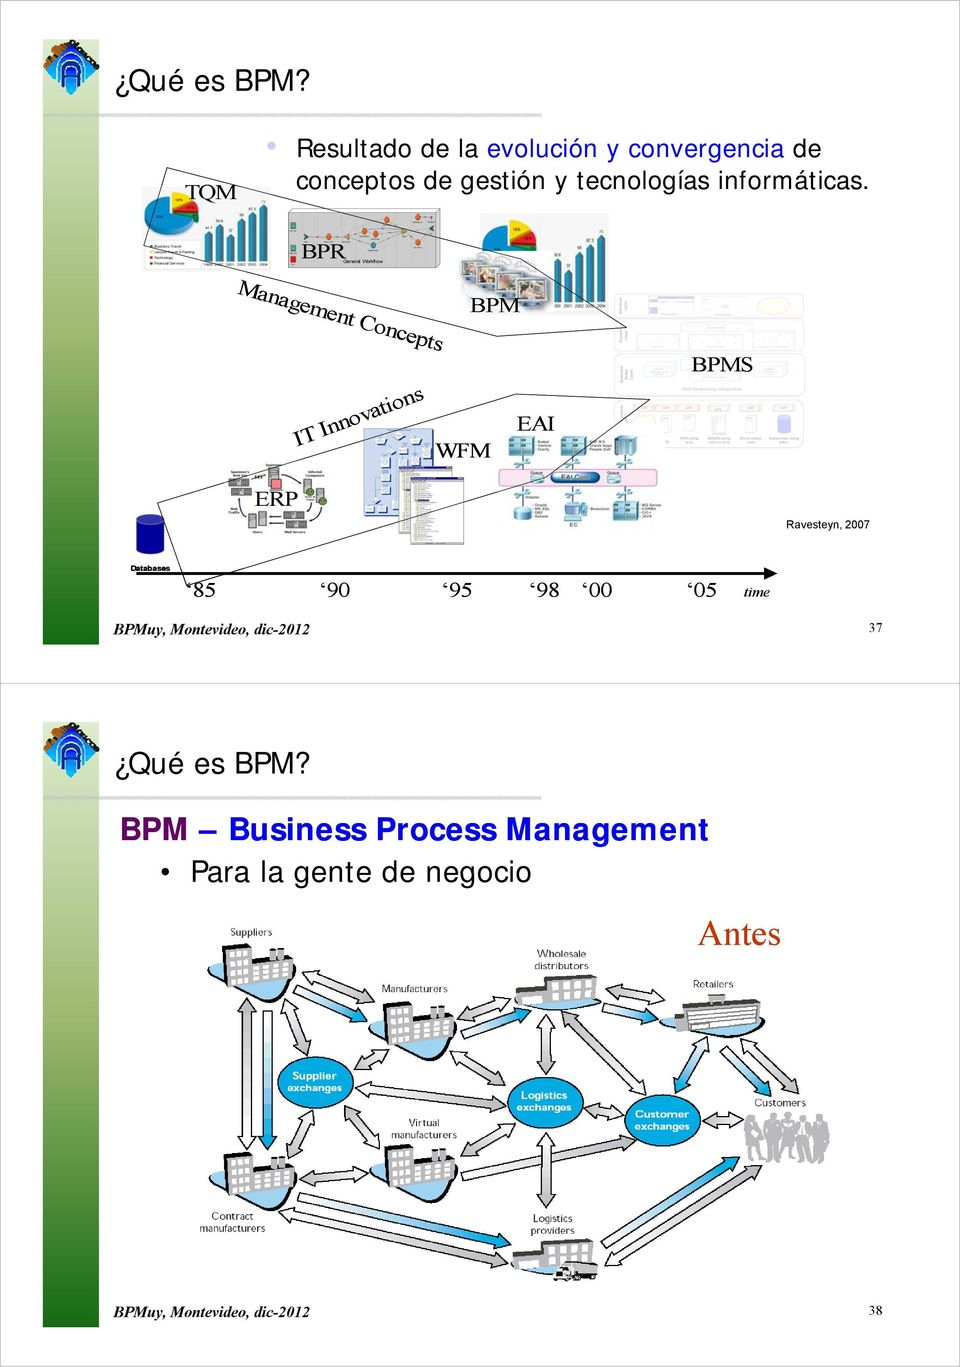 BPR BPRGeneral Workflow Management Concepts IT Innova novations BPM EAI WFM Interface Layer Process Layer Back end \ Sy ystems Business Layer Rules Layer BPMS Web Service Self-Generating Integration